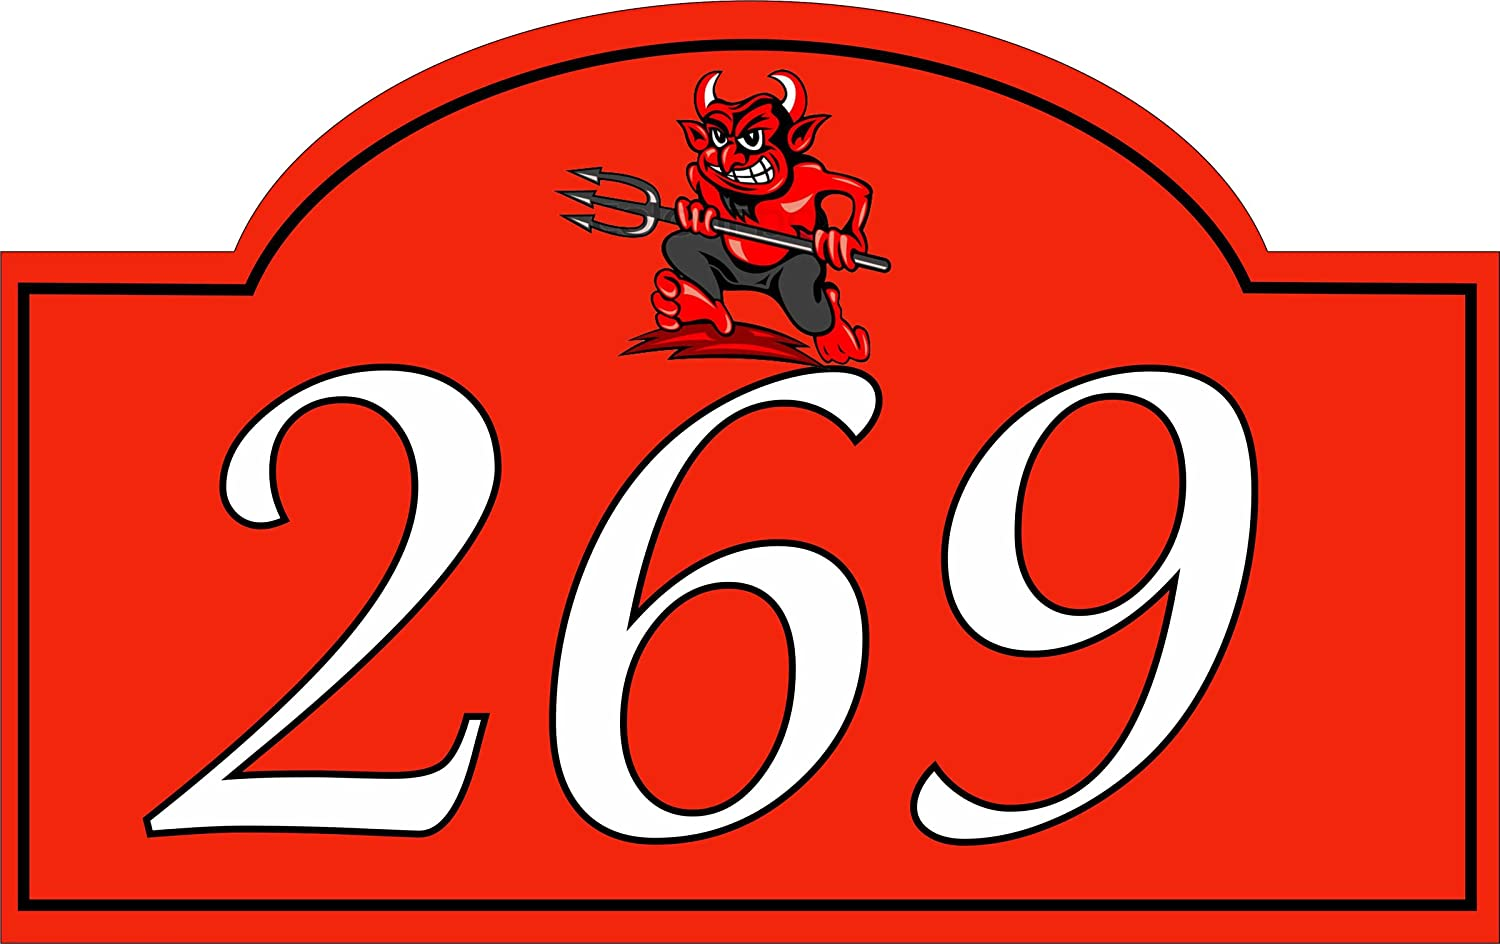 Acrylic master house number plaque 1 5mm aluminium with digital uv print red devil amazon co uk garden outdoors